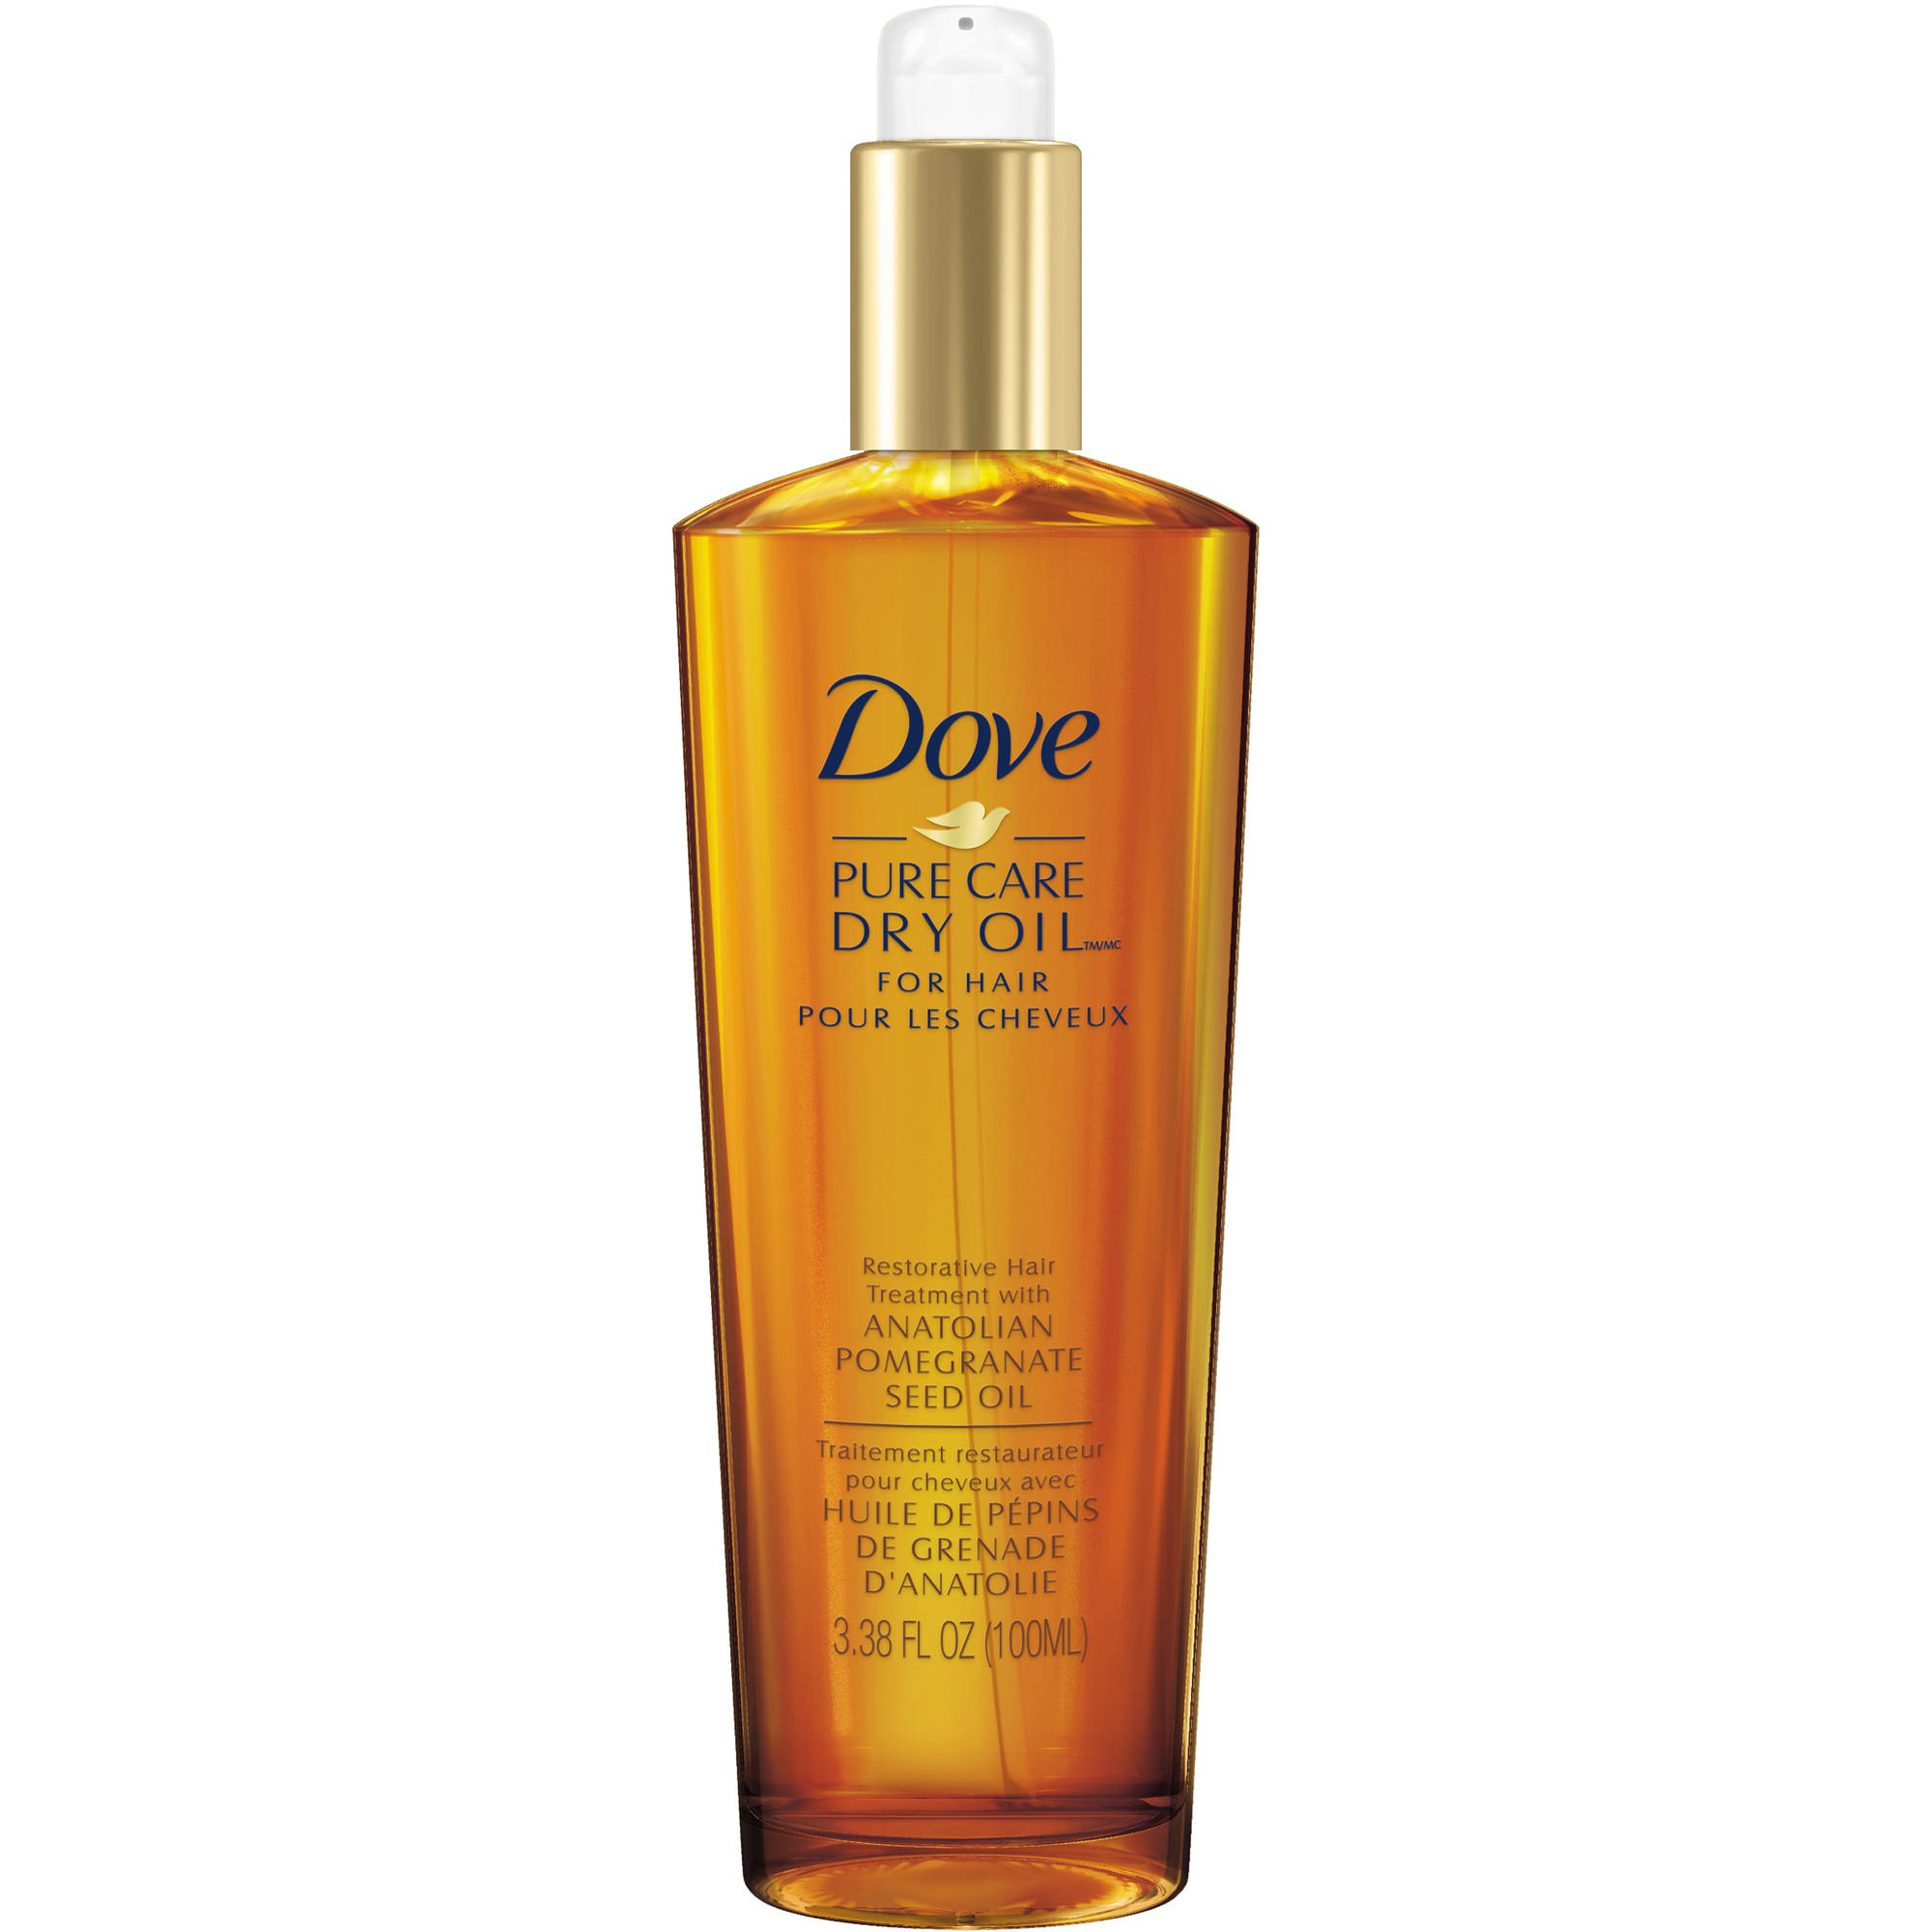 Dove Dry Oil, Pure Care Restorative Hair Treatment 3.38 oz, $32.96